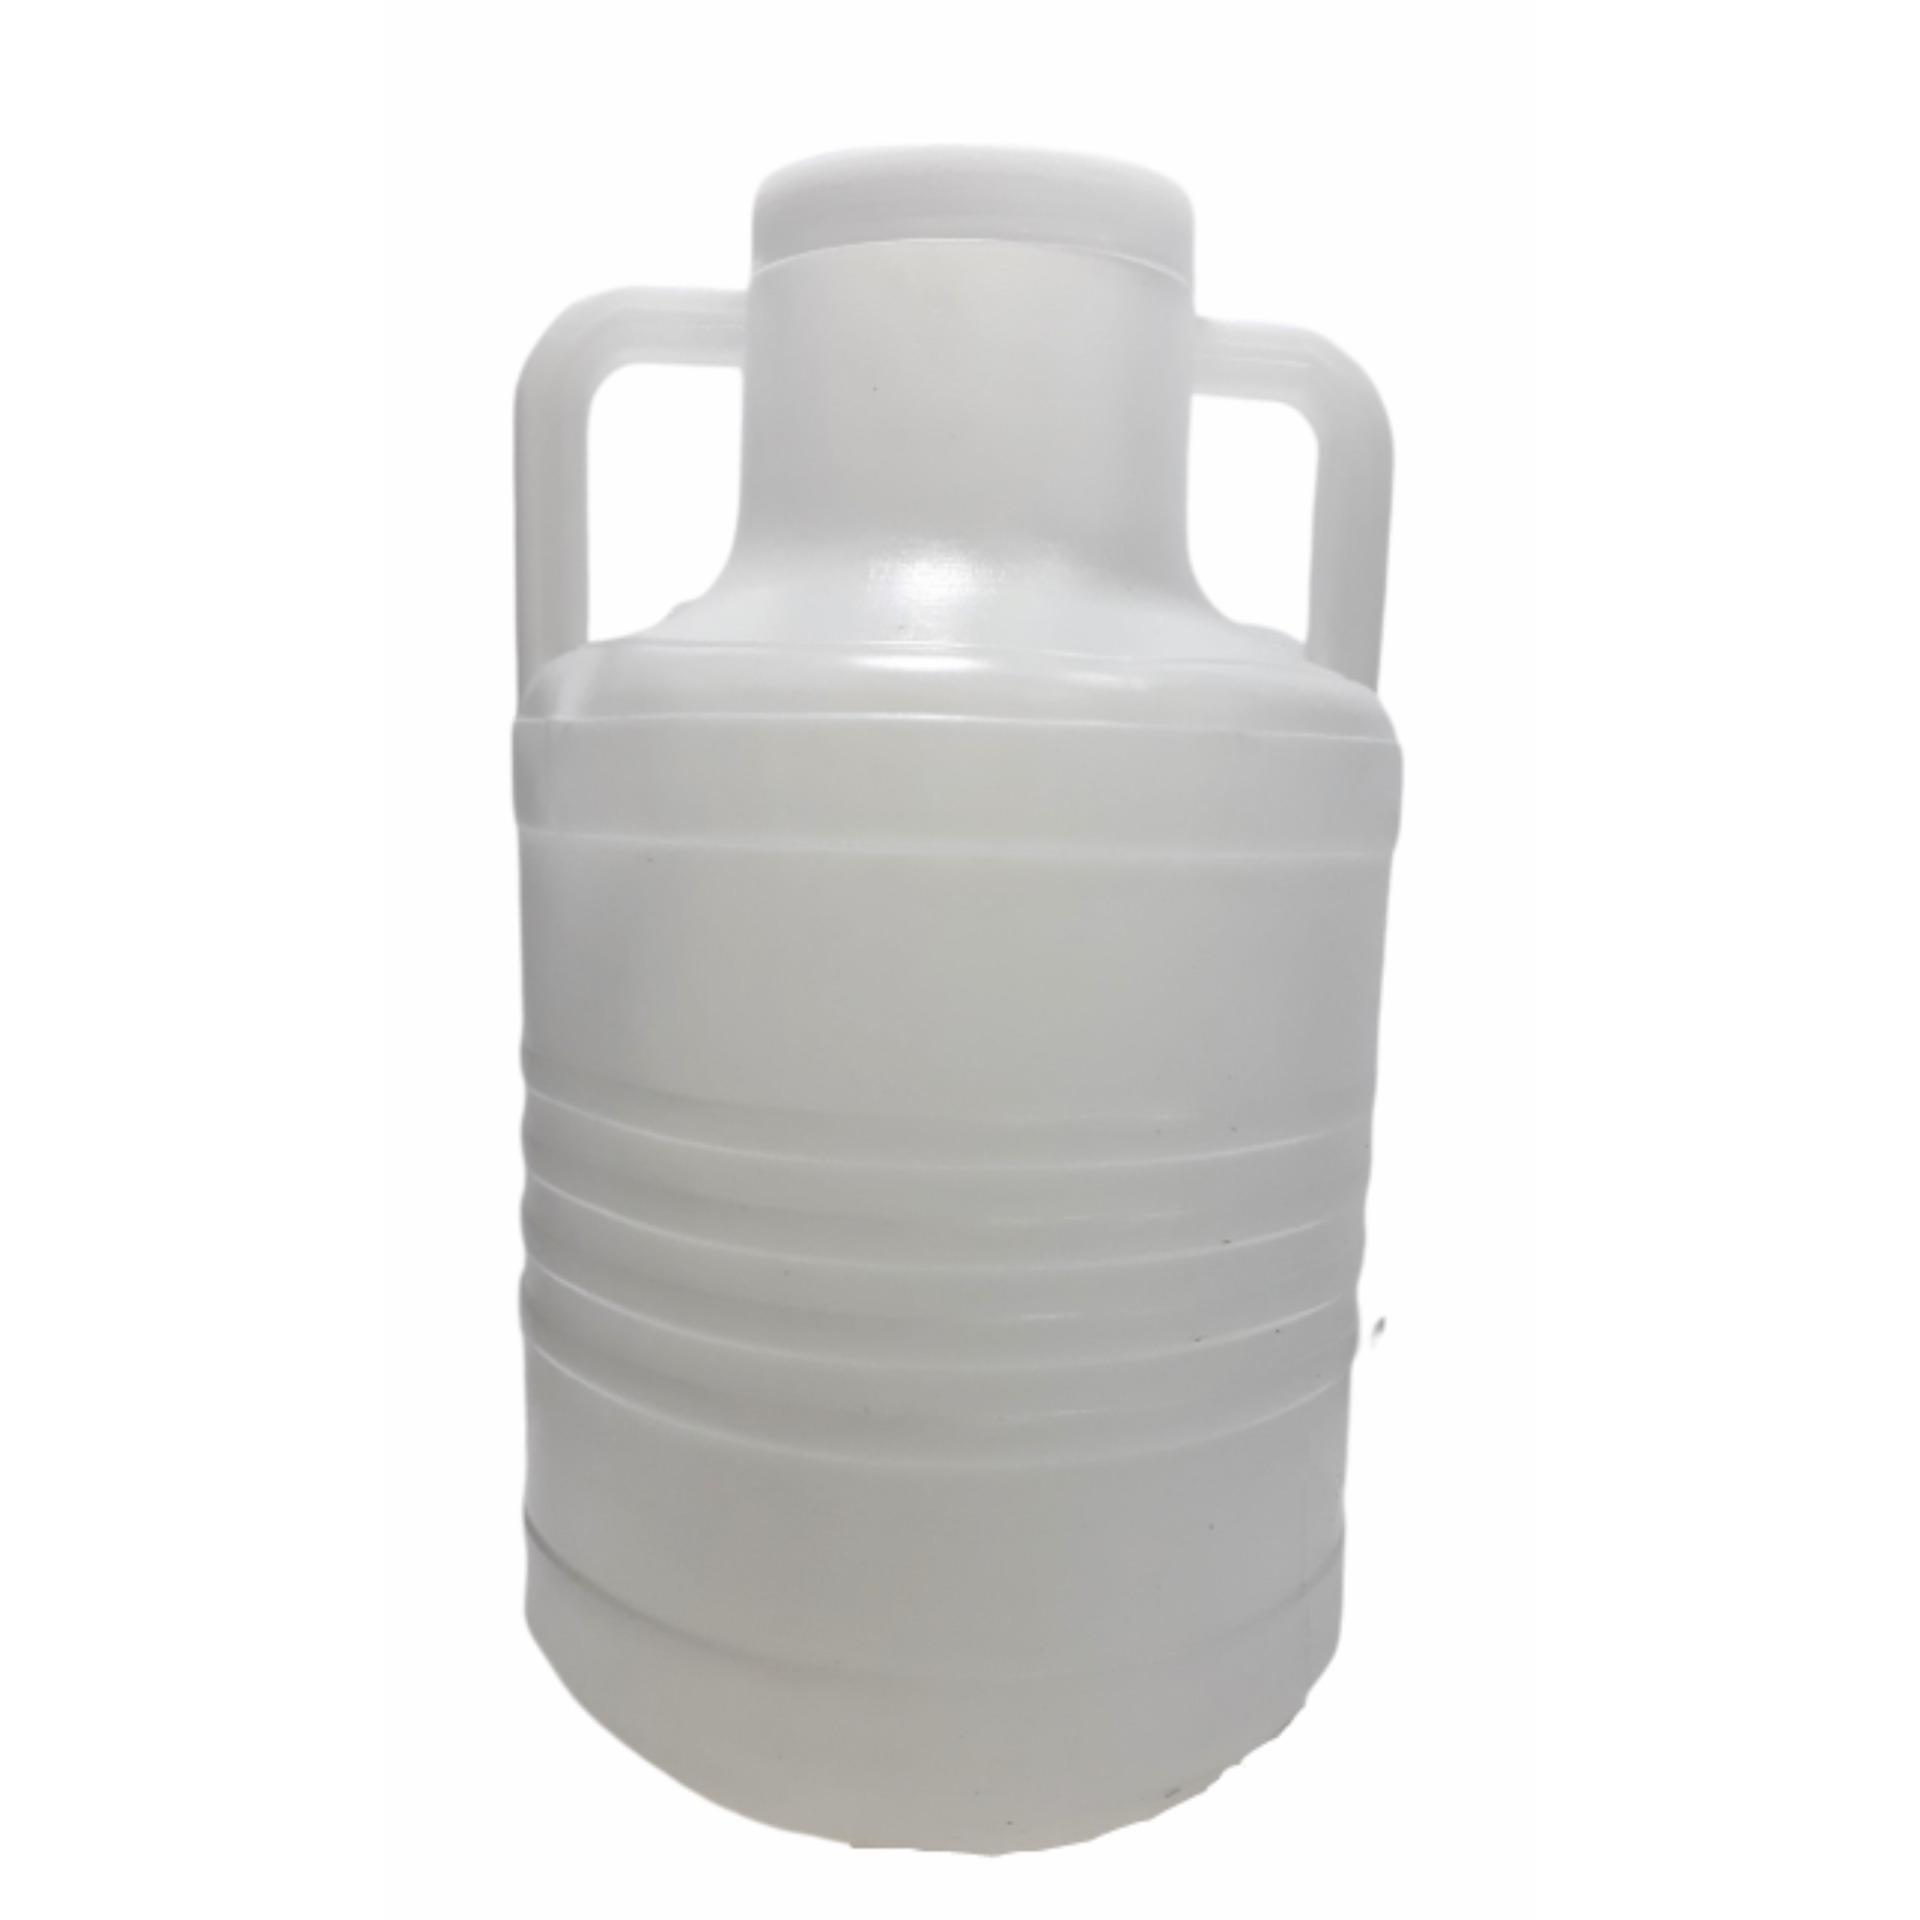 Plastic Water Gallon Bottle Cane 5Liter Pure Life White: Buy Online at Best  Prices in Pakistan | Daraz.pk